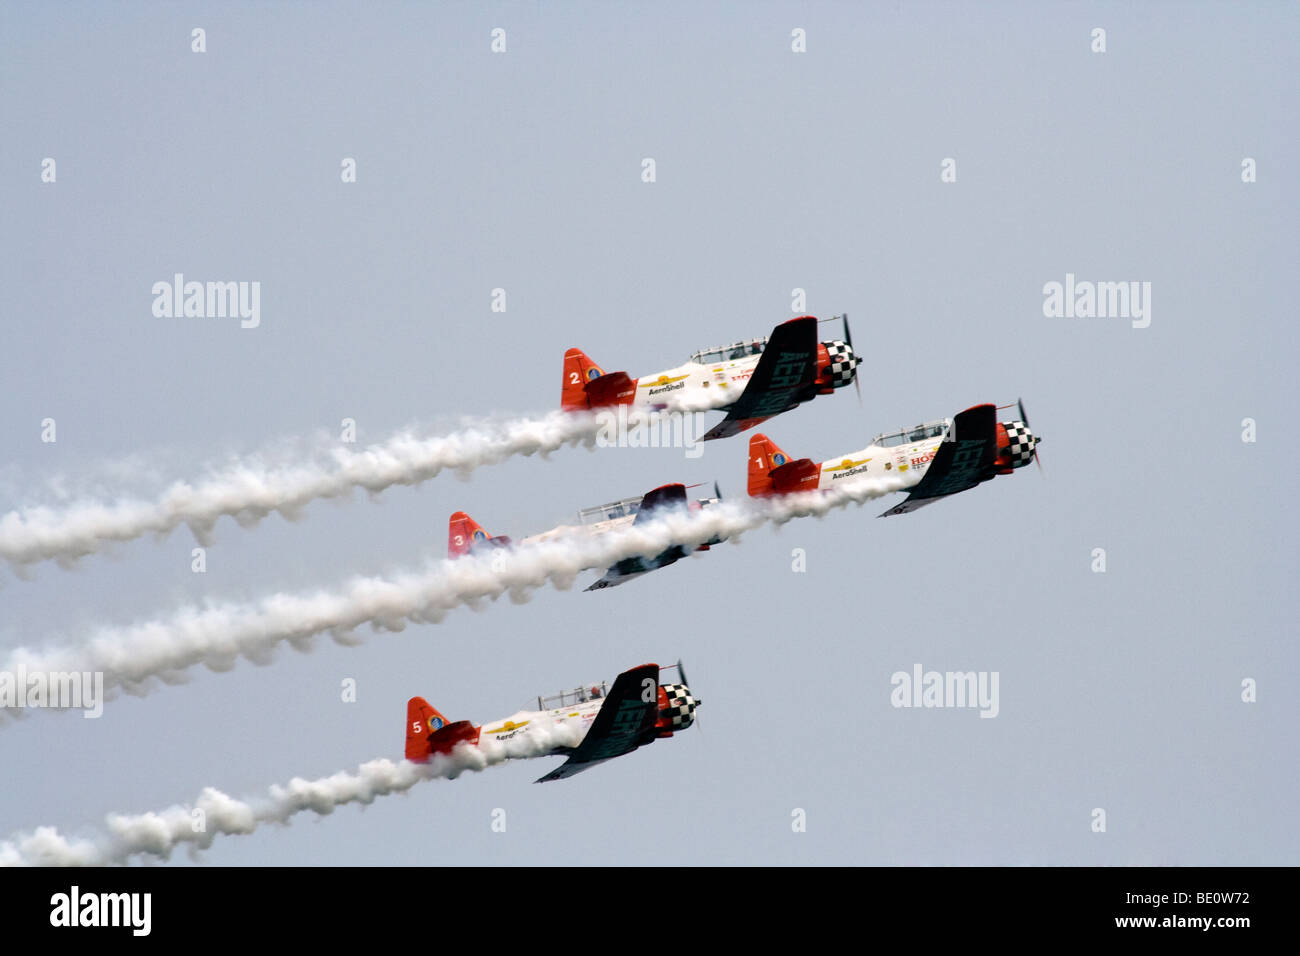 The Aero Shell Aerobatic Team. The Chicago Air and Water Show 2009 - Stock Image